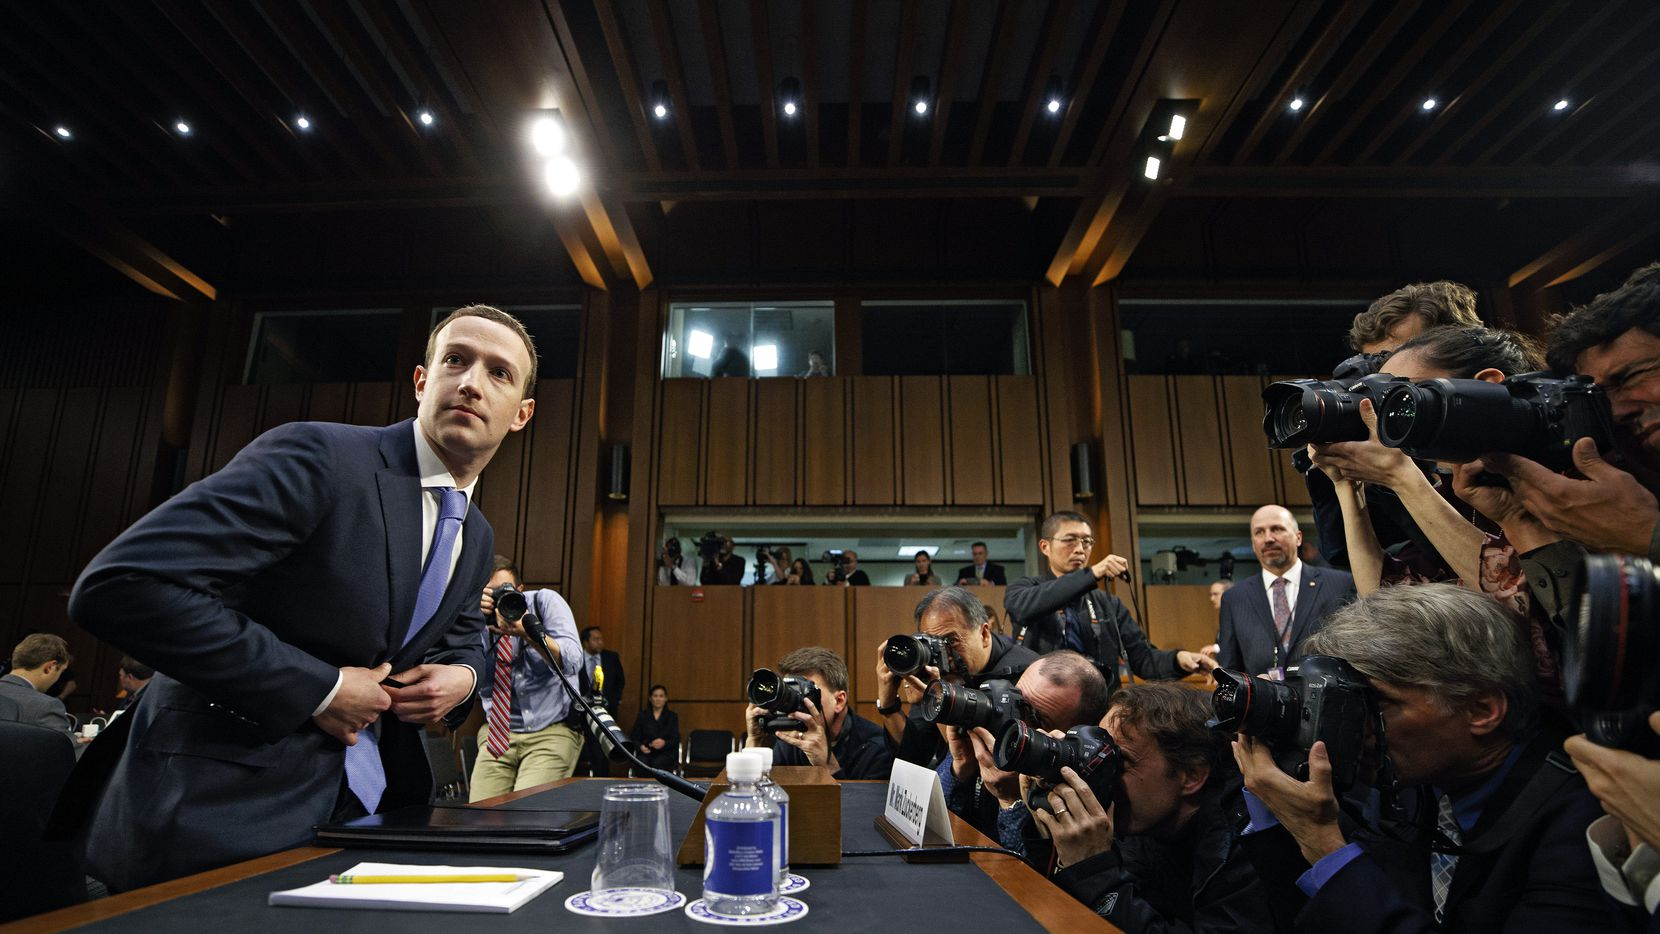 Facebook CEO Mark Zuckerberg testified at a Senate hearing in Washington and apologized for not protecting users' data. (Tom Brenner/The New York Times)